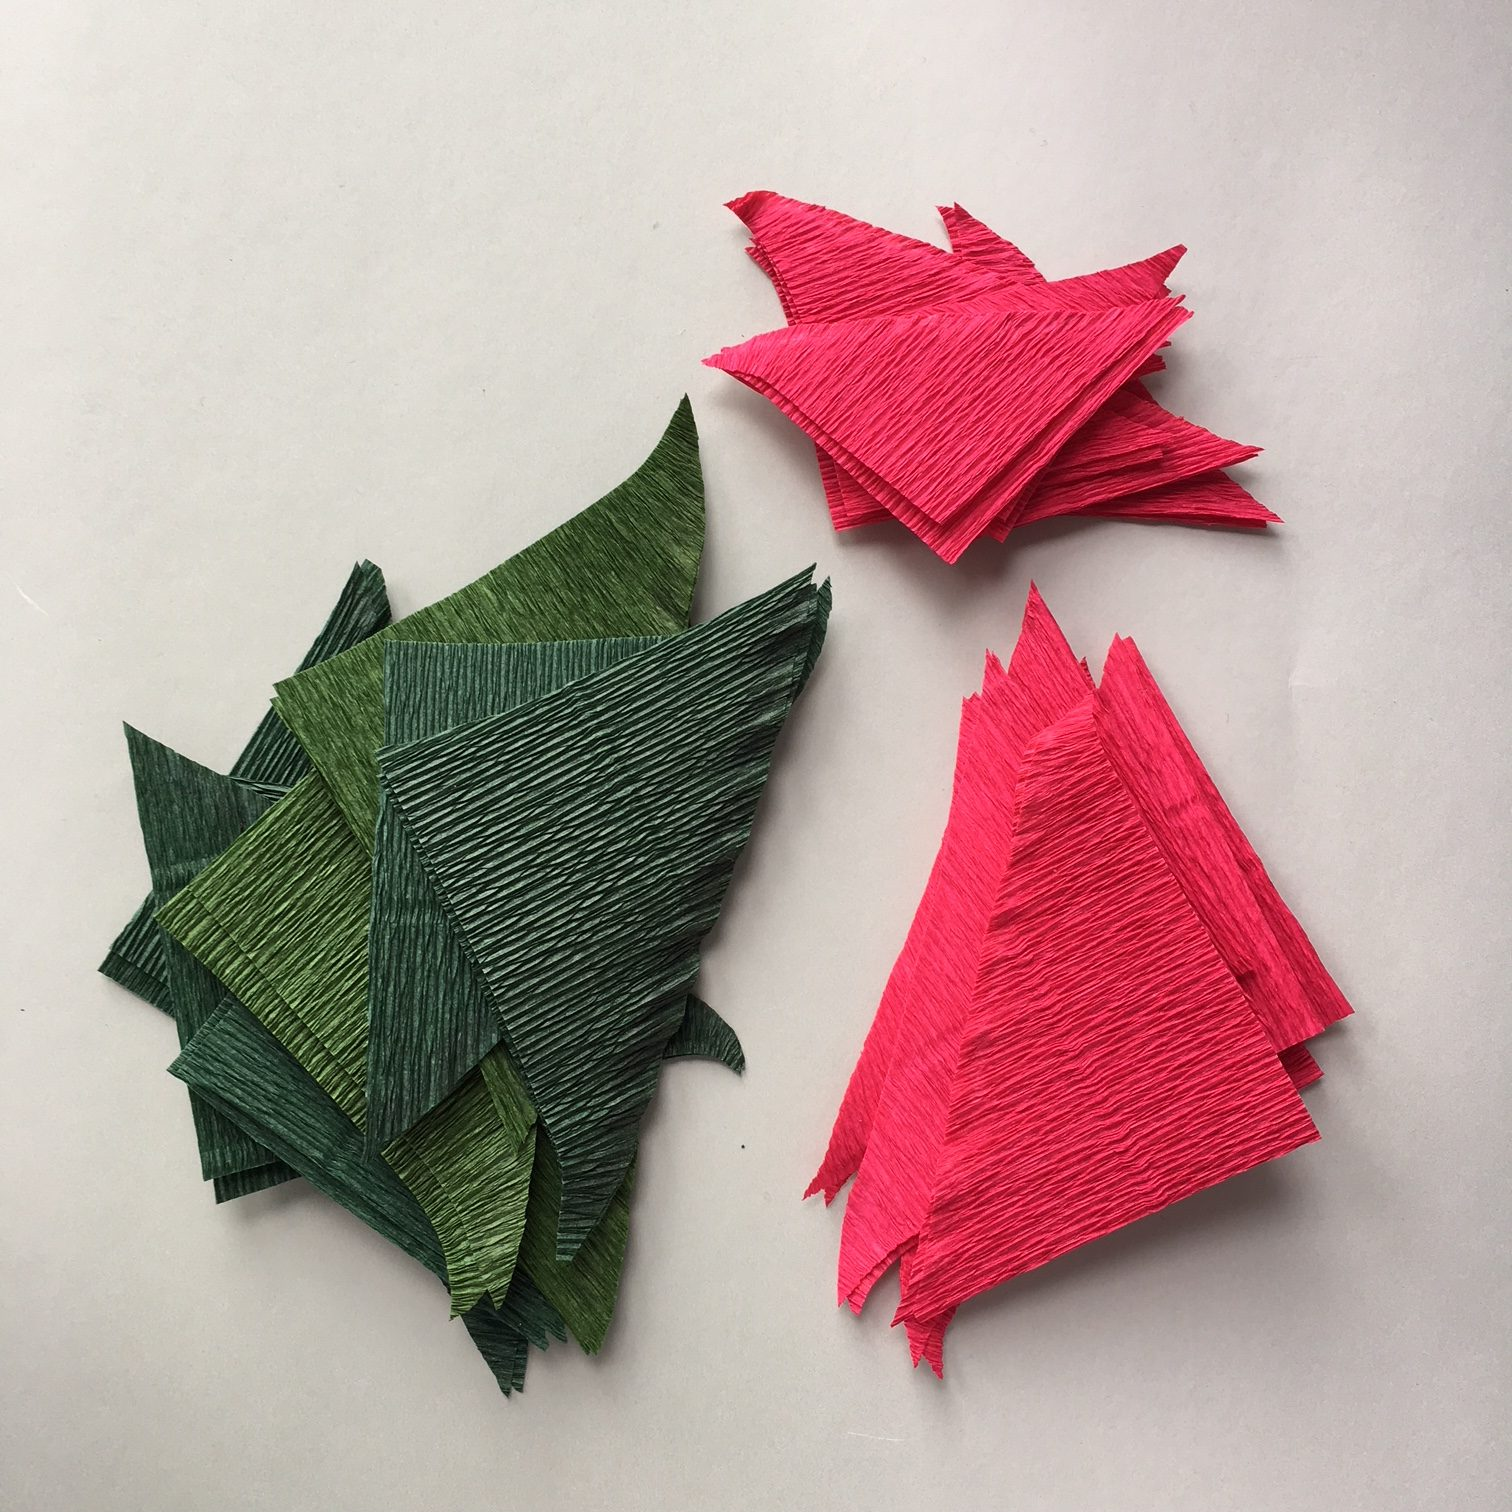 glued together green and red rectangles of crepe paper